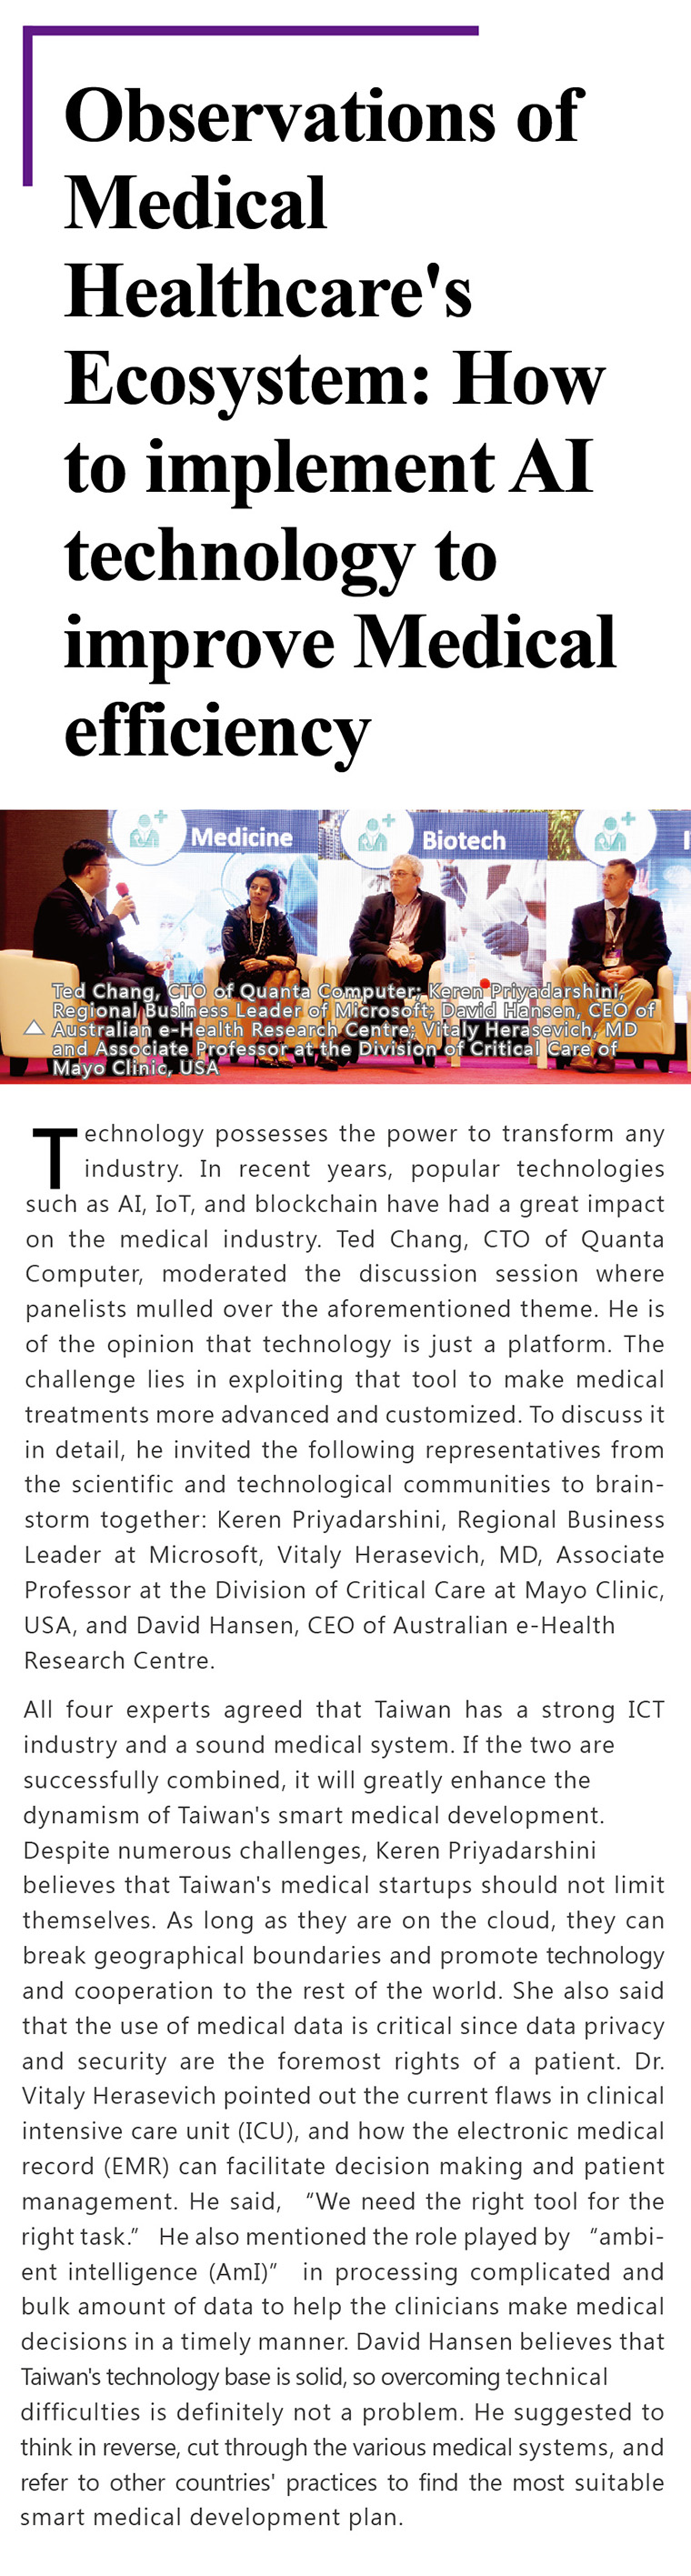 Technology possesses the power to transform any industry. In recent years, popular technologies such as AI, IoT, and blockchain have had a great impact on the medical industry. Ted Chang, CTO of Quanta Computer, moderated the discussion session where panelists mulled over the aforementioned theme. He is of the opinion that technology is just a platform. The challenge lies in exploiting that tool to make medical treatments more advanced and customized. To discuss it in detail, he invited the following representatives from the scientific and technological communities to brainstorm together: Keren Priyadarshini, Regional Business Leader at Microsoft, Vitaly Herasevich, MD, Associate Professor at the Division of Critical Care at Mayo Clinic, USA, and David Hansen, CEO of Australian e-Health Research Centre.